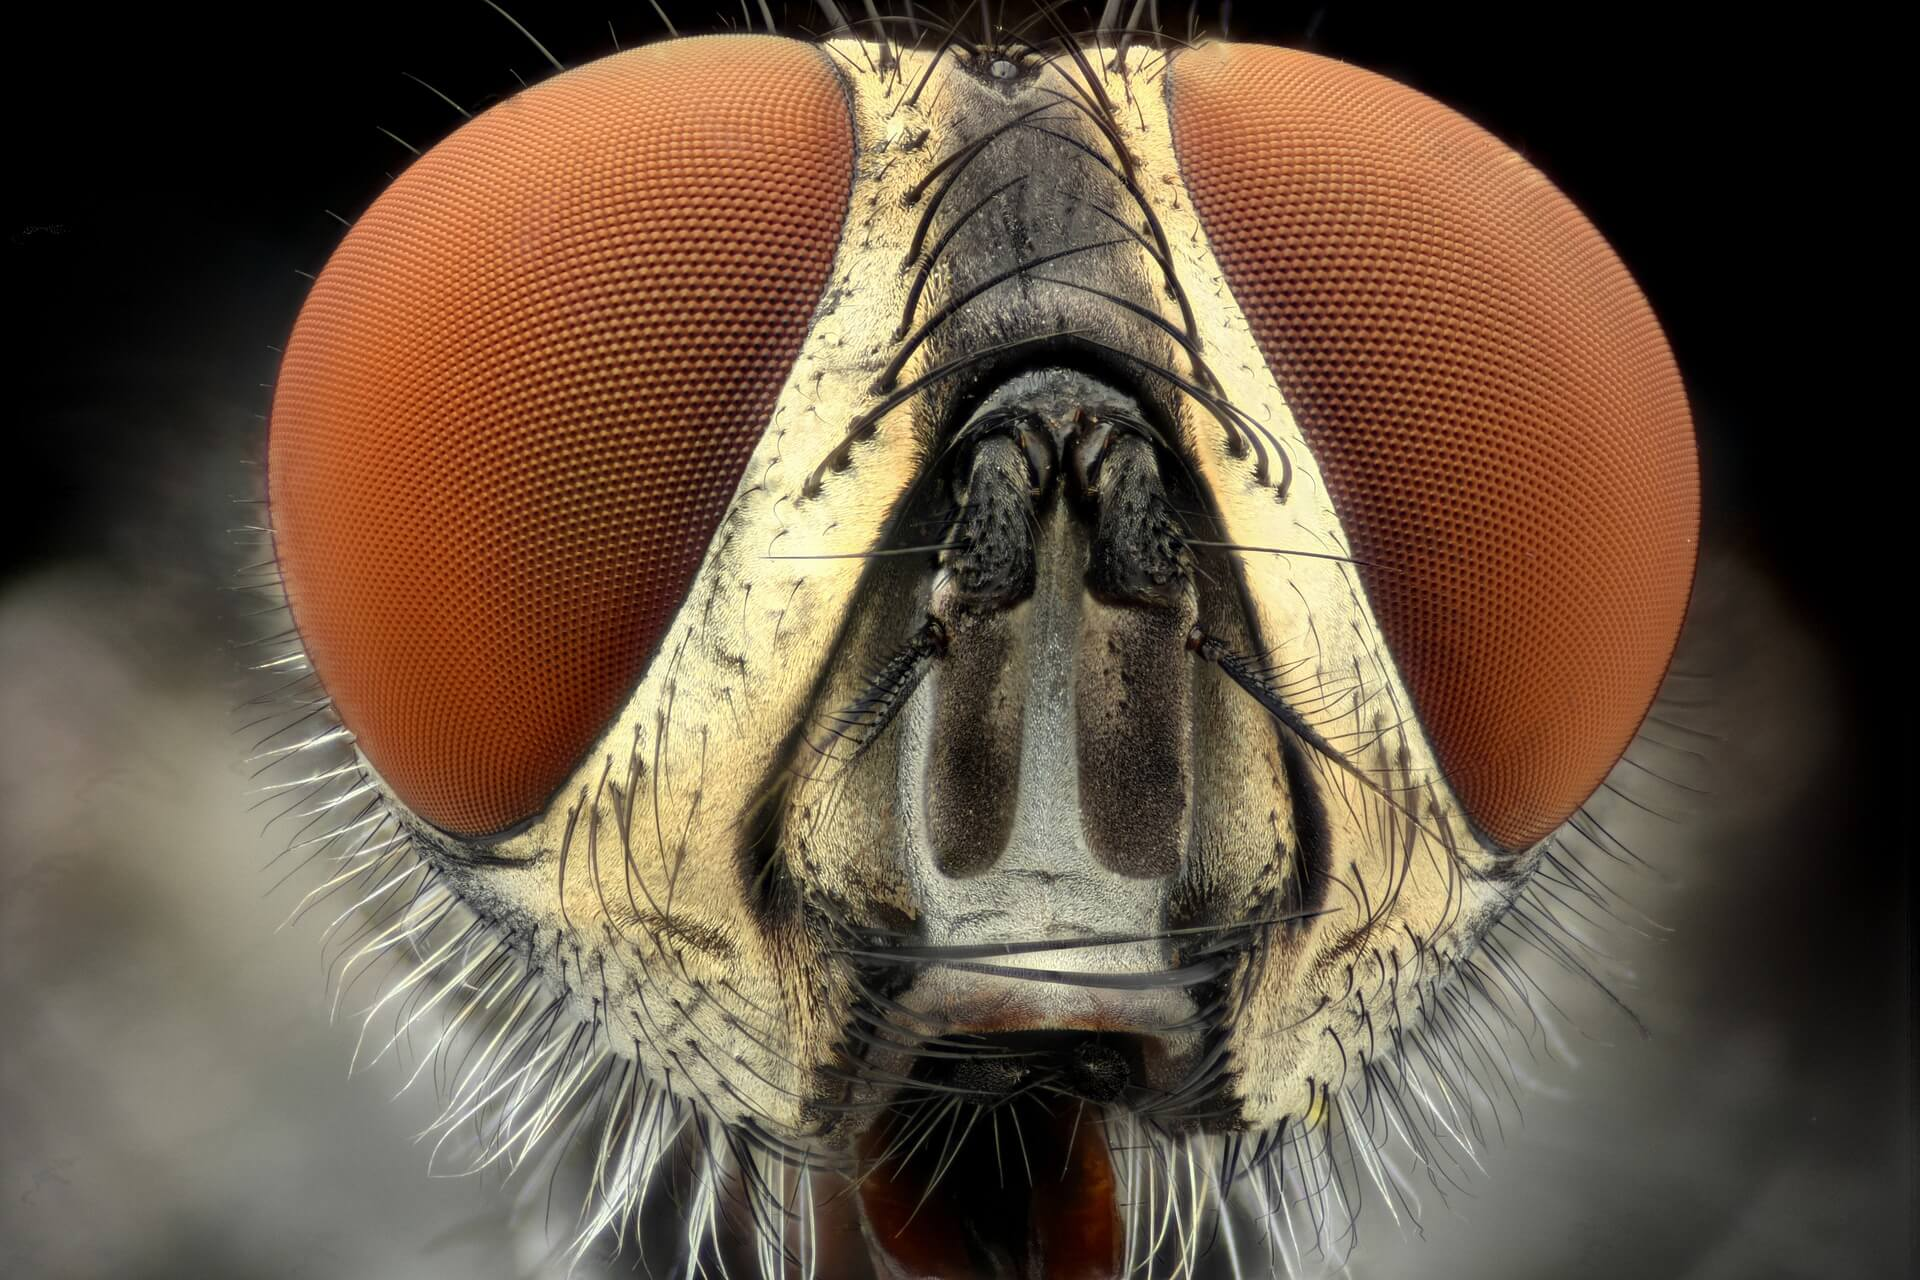 macro photography of bug's face